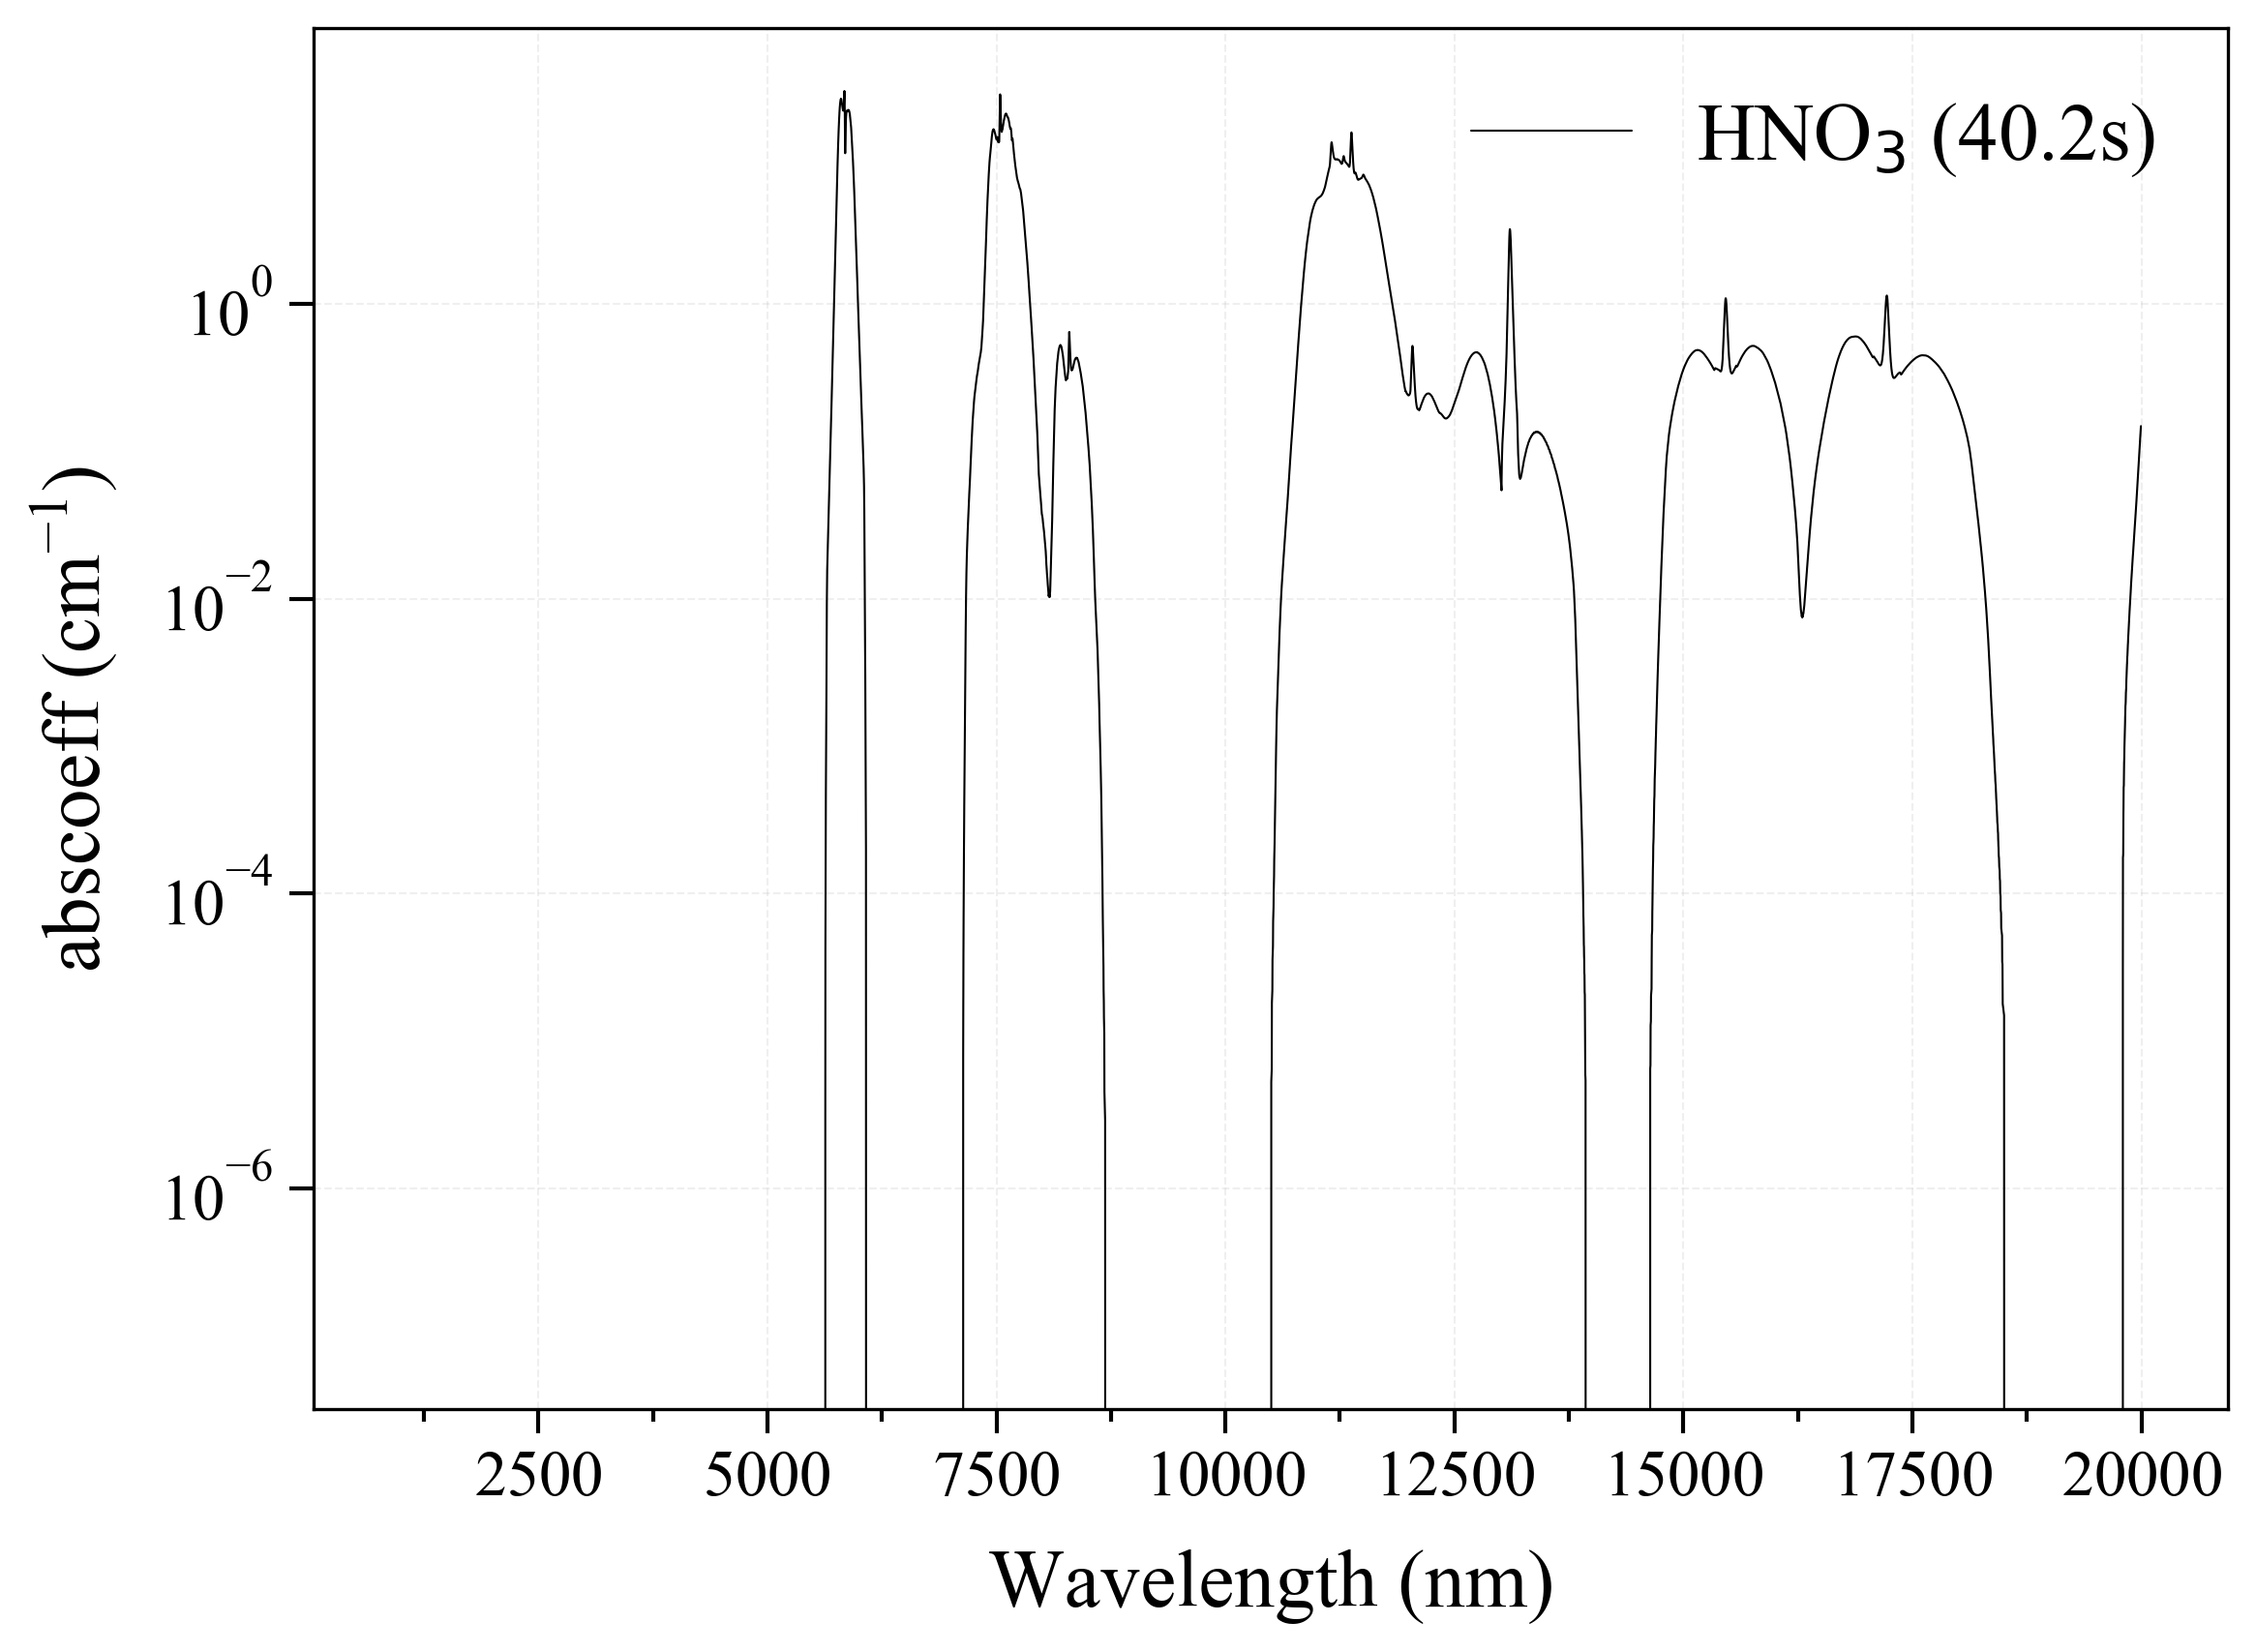 Nitric Acid HNO3 infrared absorption coefficient